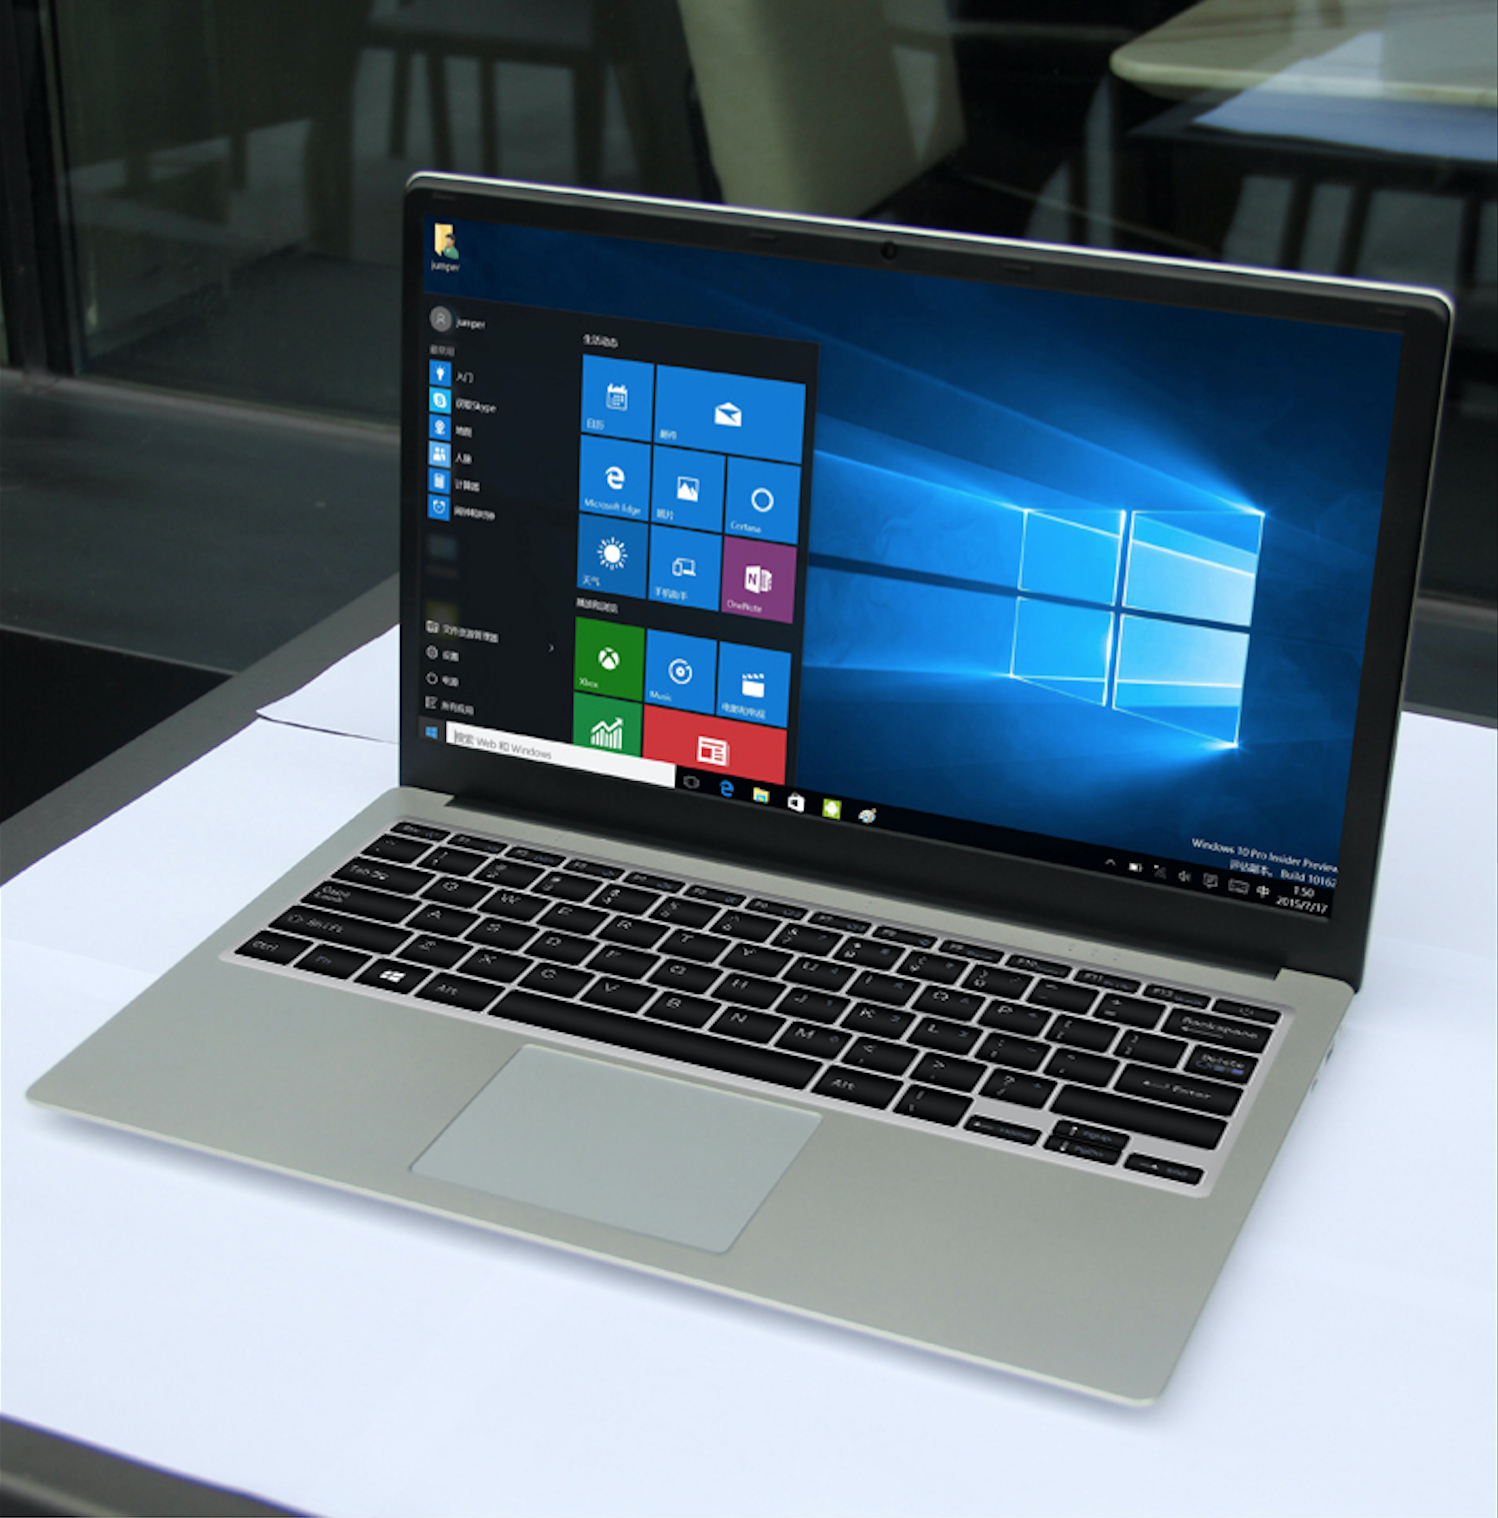 Hot Selling 15.6 Inch Laptop Notebook Computer Core I3/I5/I7 Cheap Prices In China With I7 CPU  Ram 8GB  256/512 GB SSD ITB WiFi